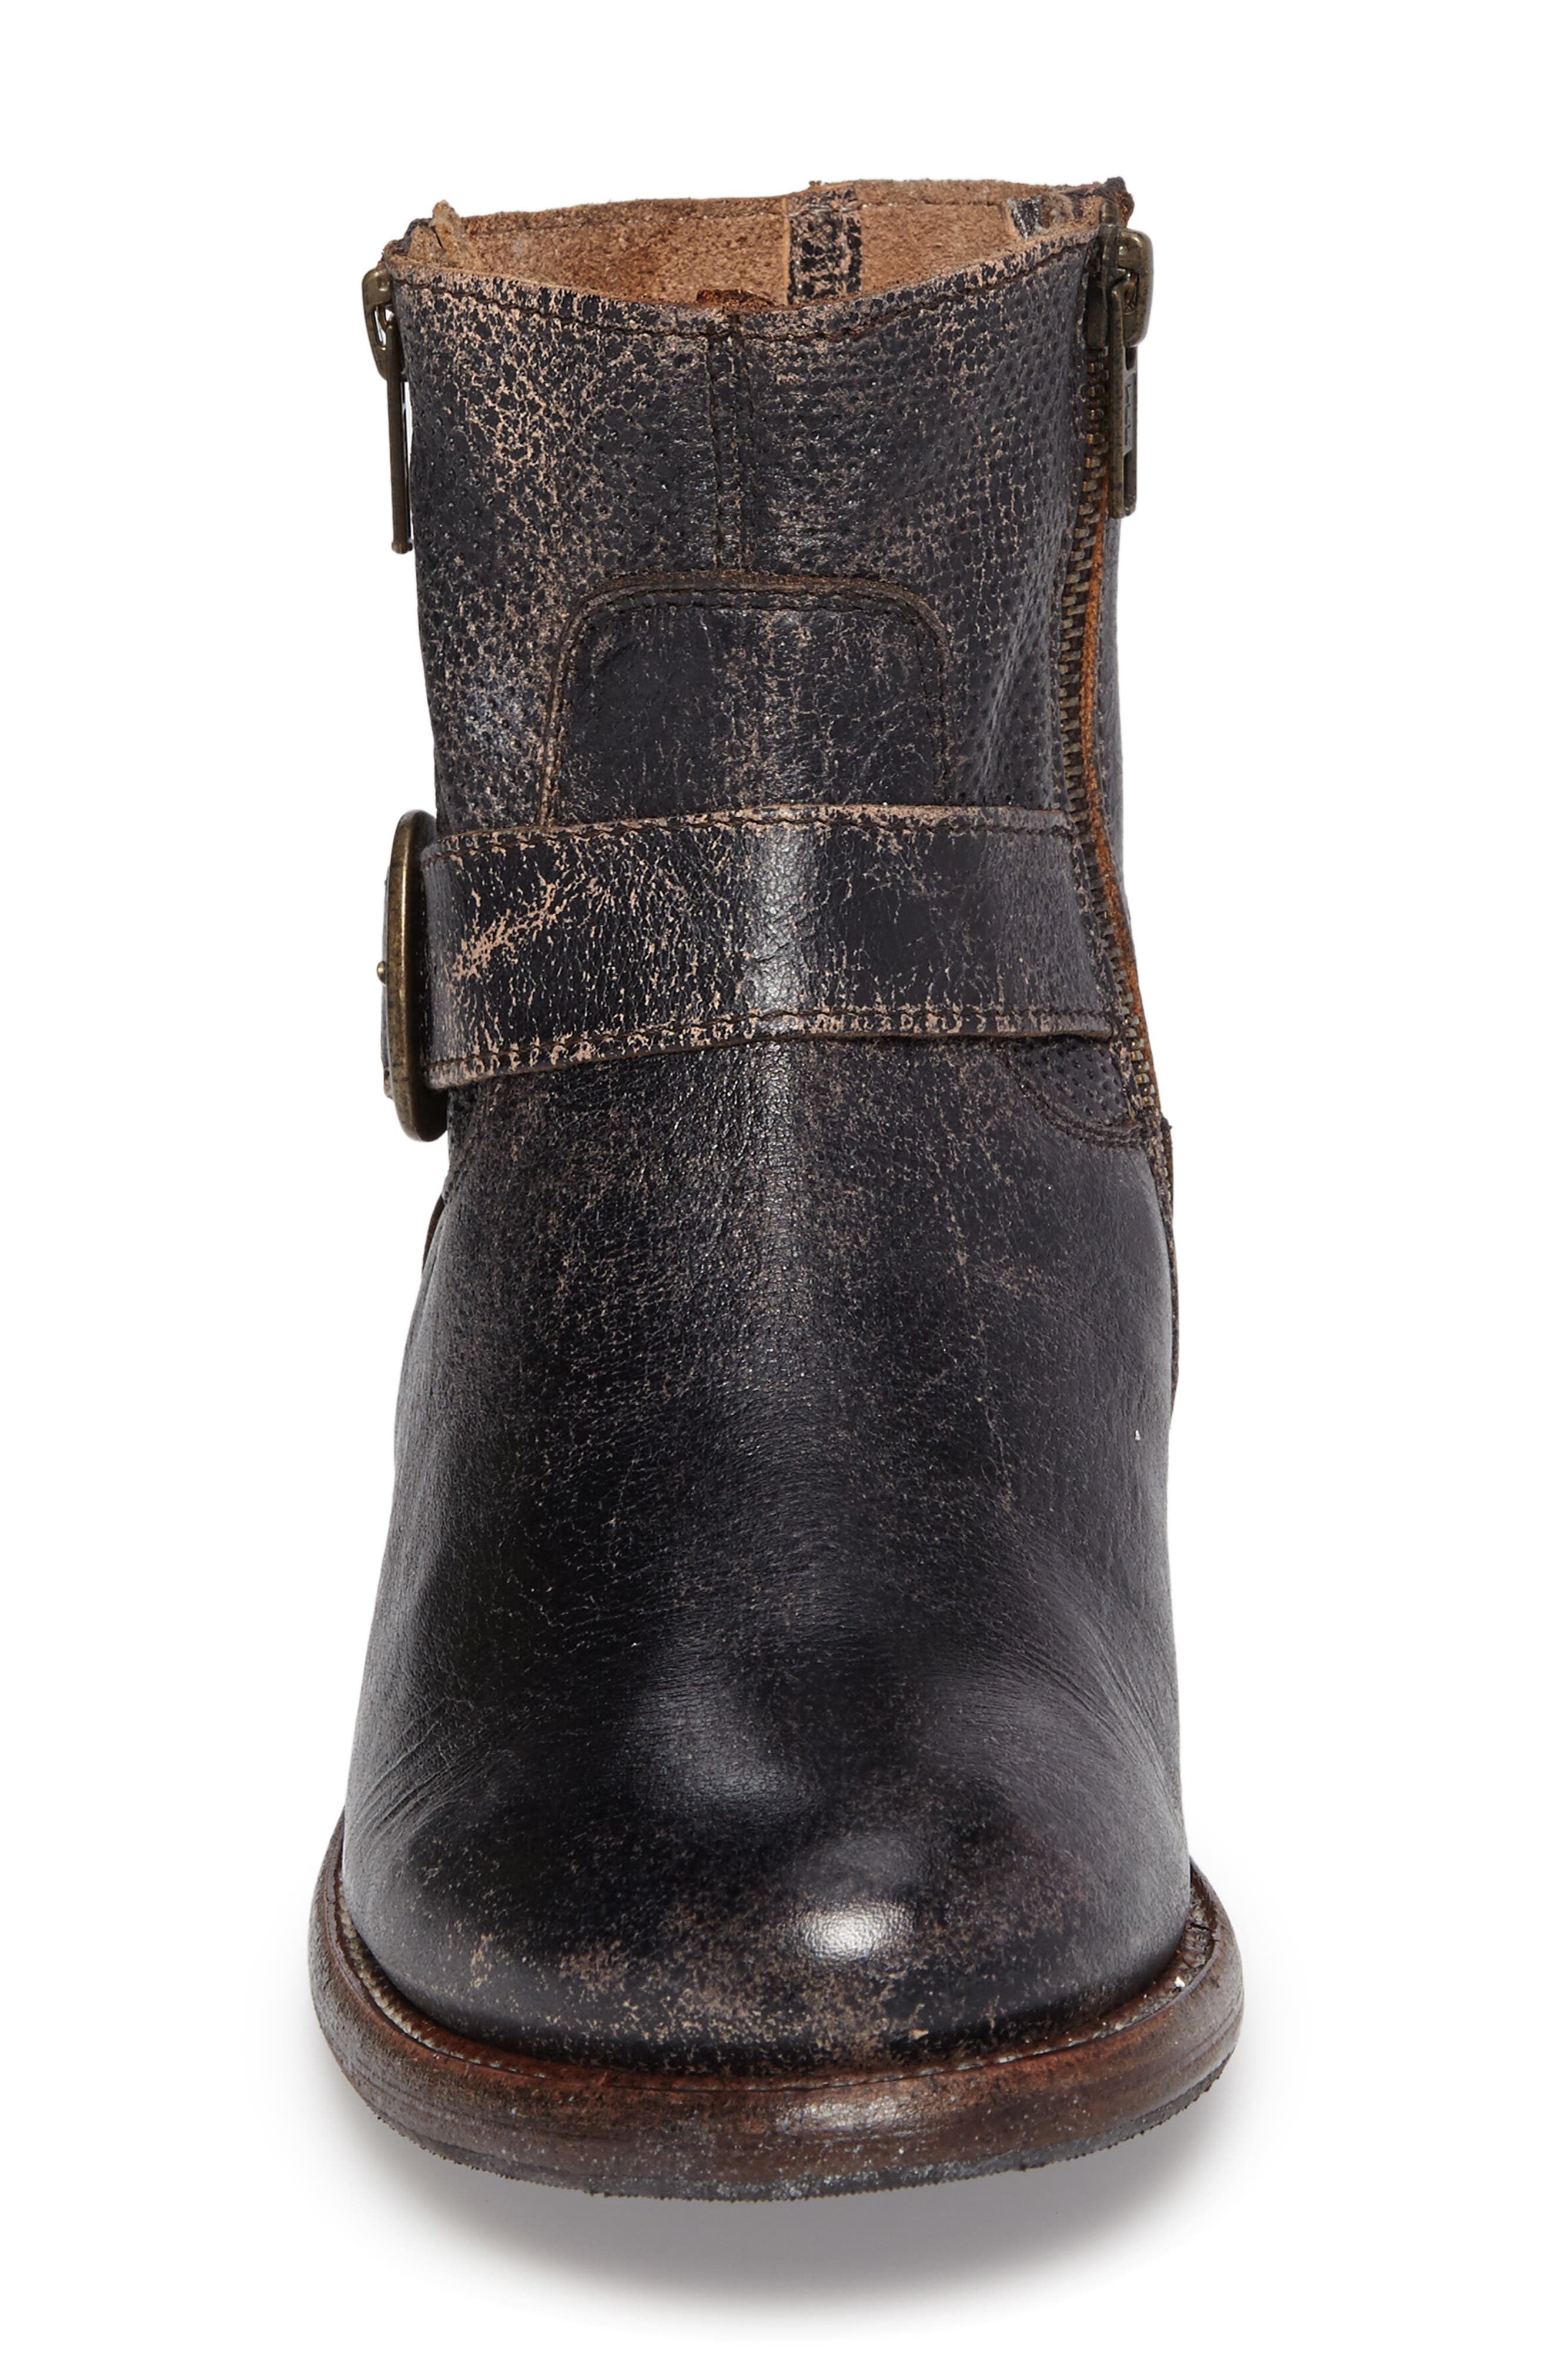 Becca Buckle Boot,                             Alternate thumbnail 4, color,                             008